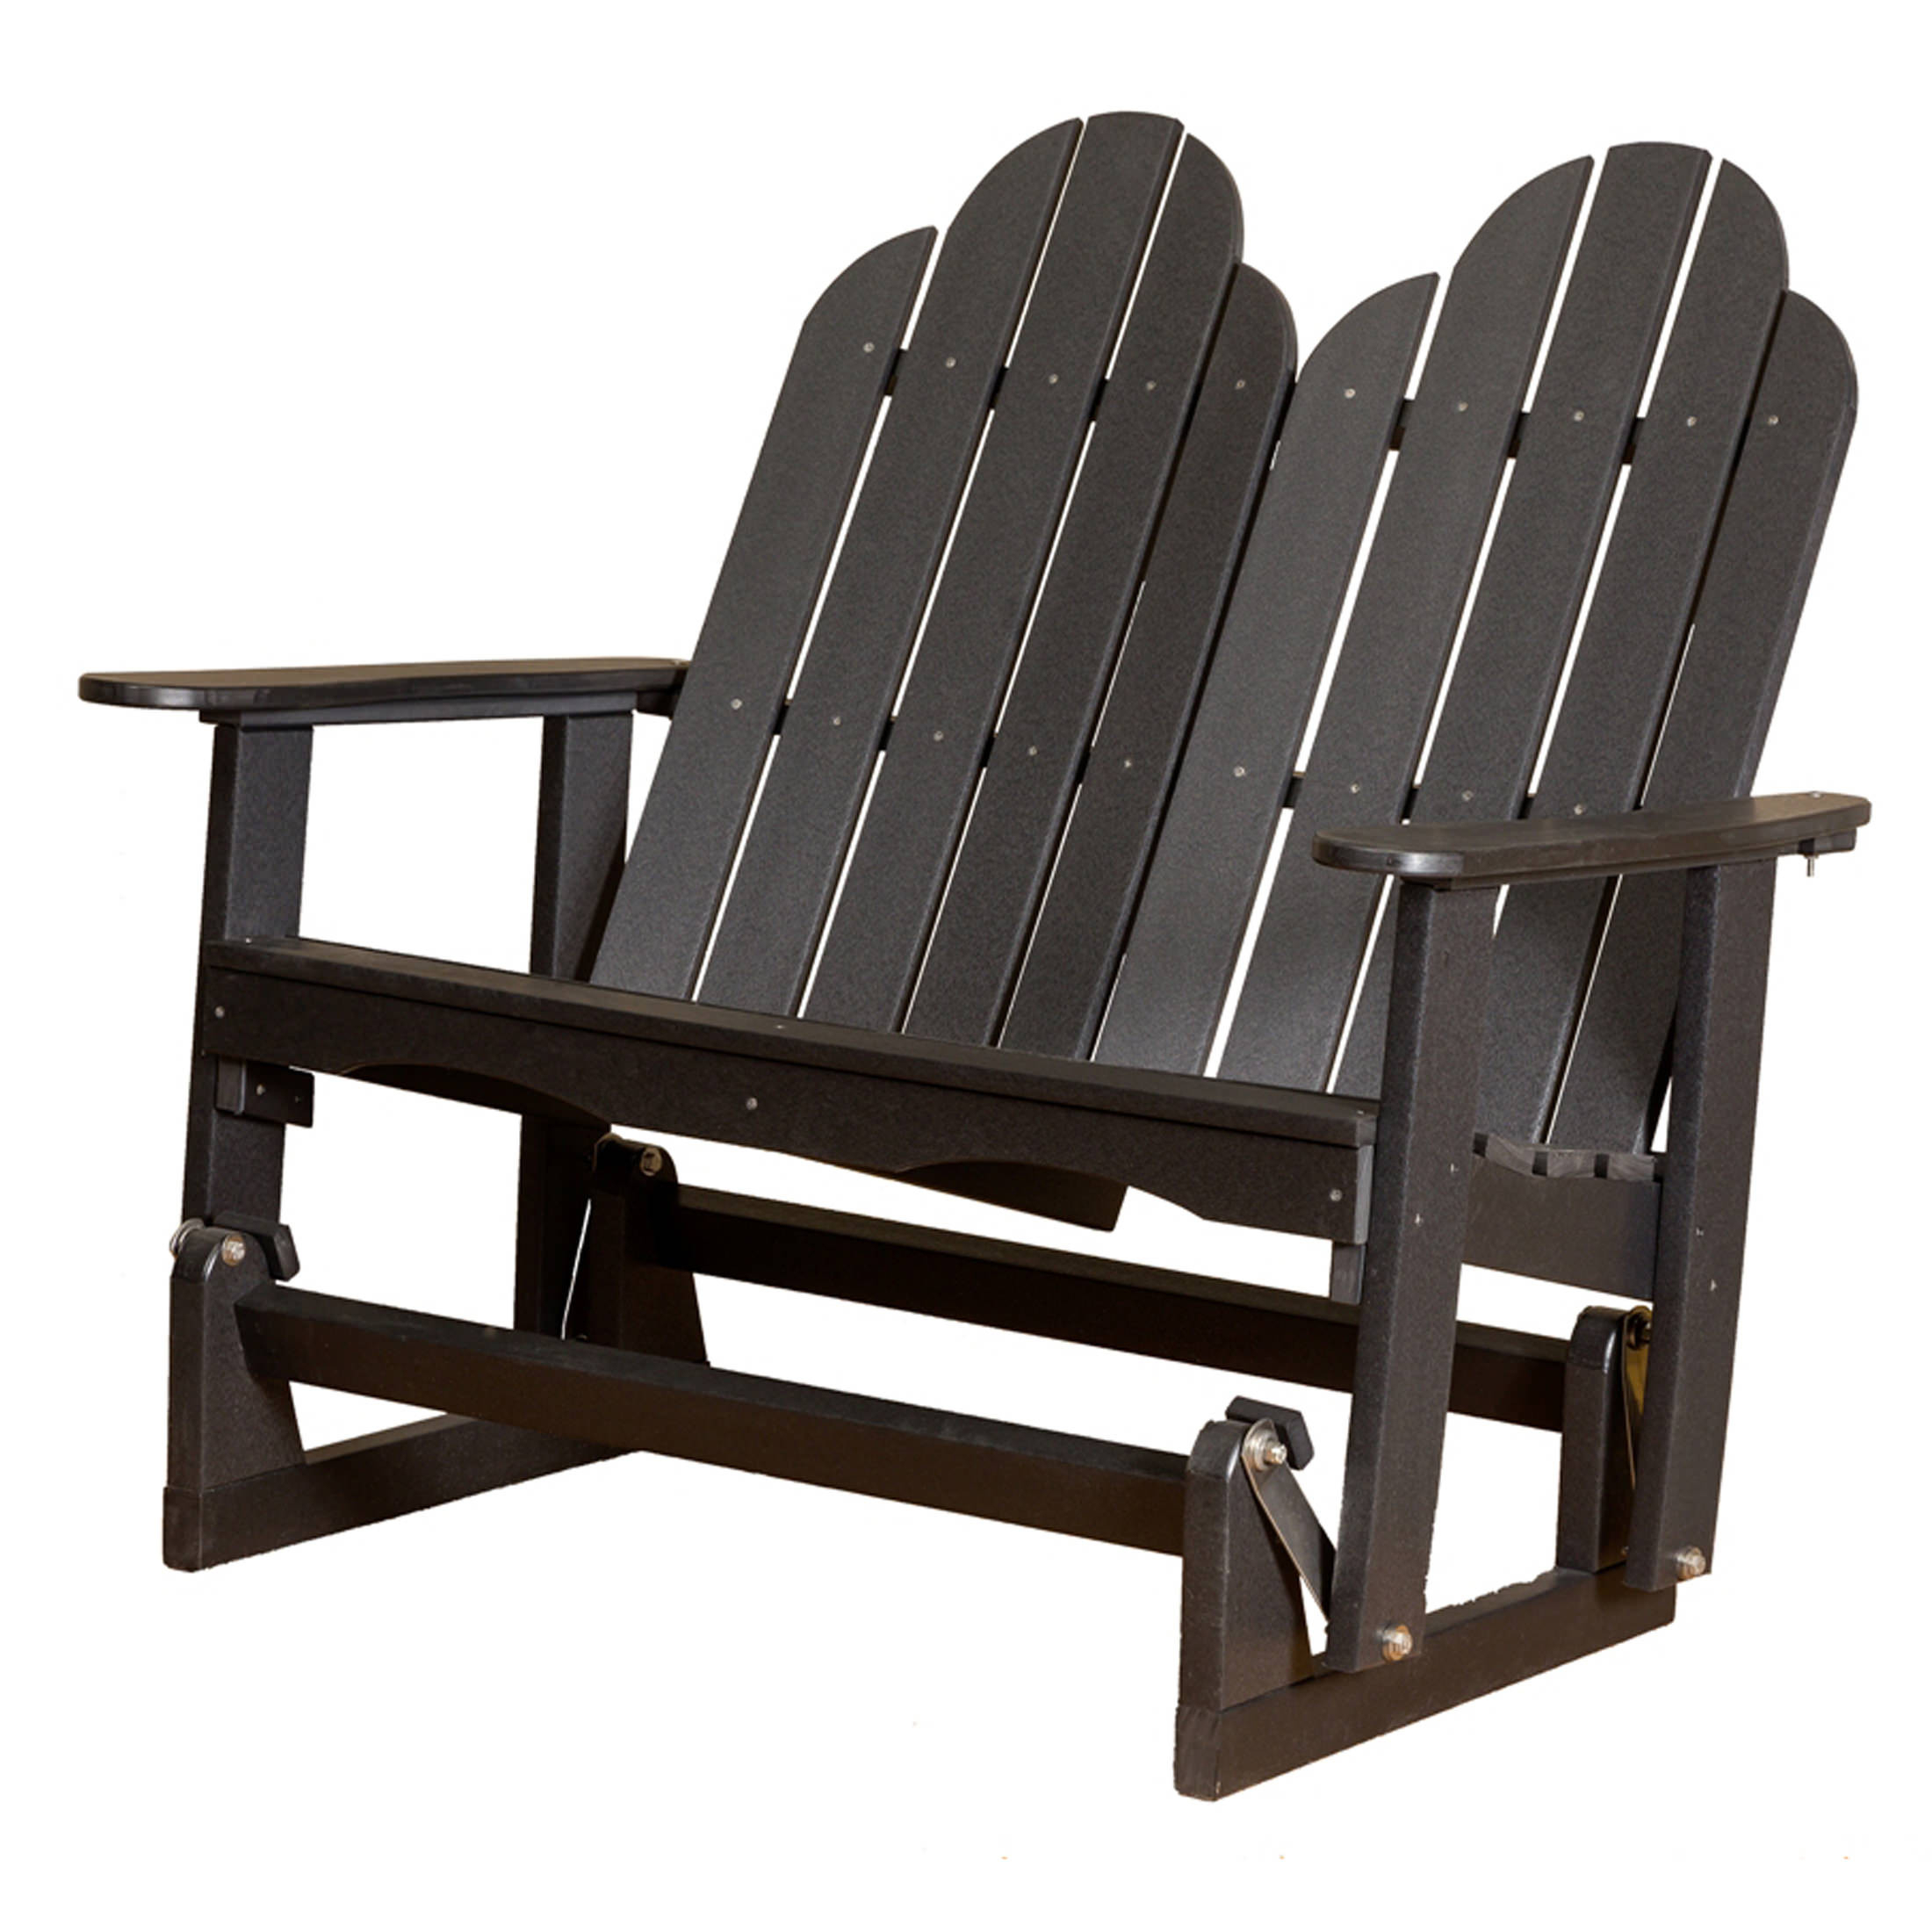 Classic Adirondack Glider Benches With Regard To Newest Little Cottage Classic Adirondack Glider (Gallery 18 of 30)